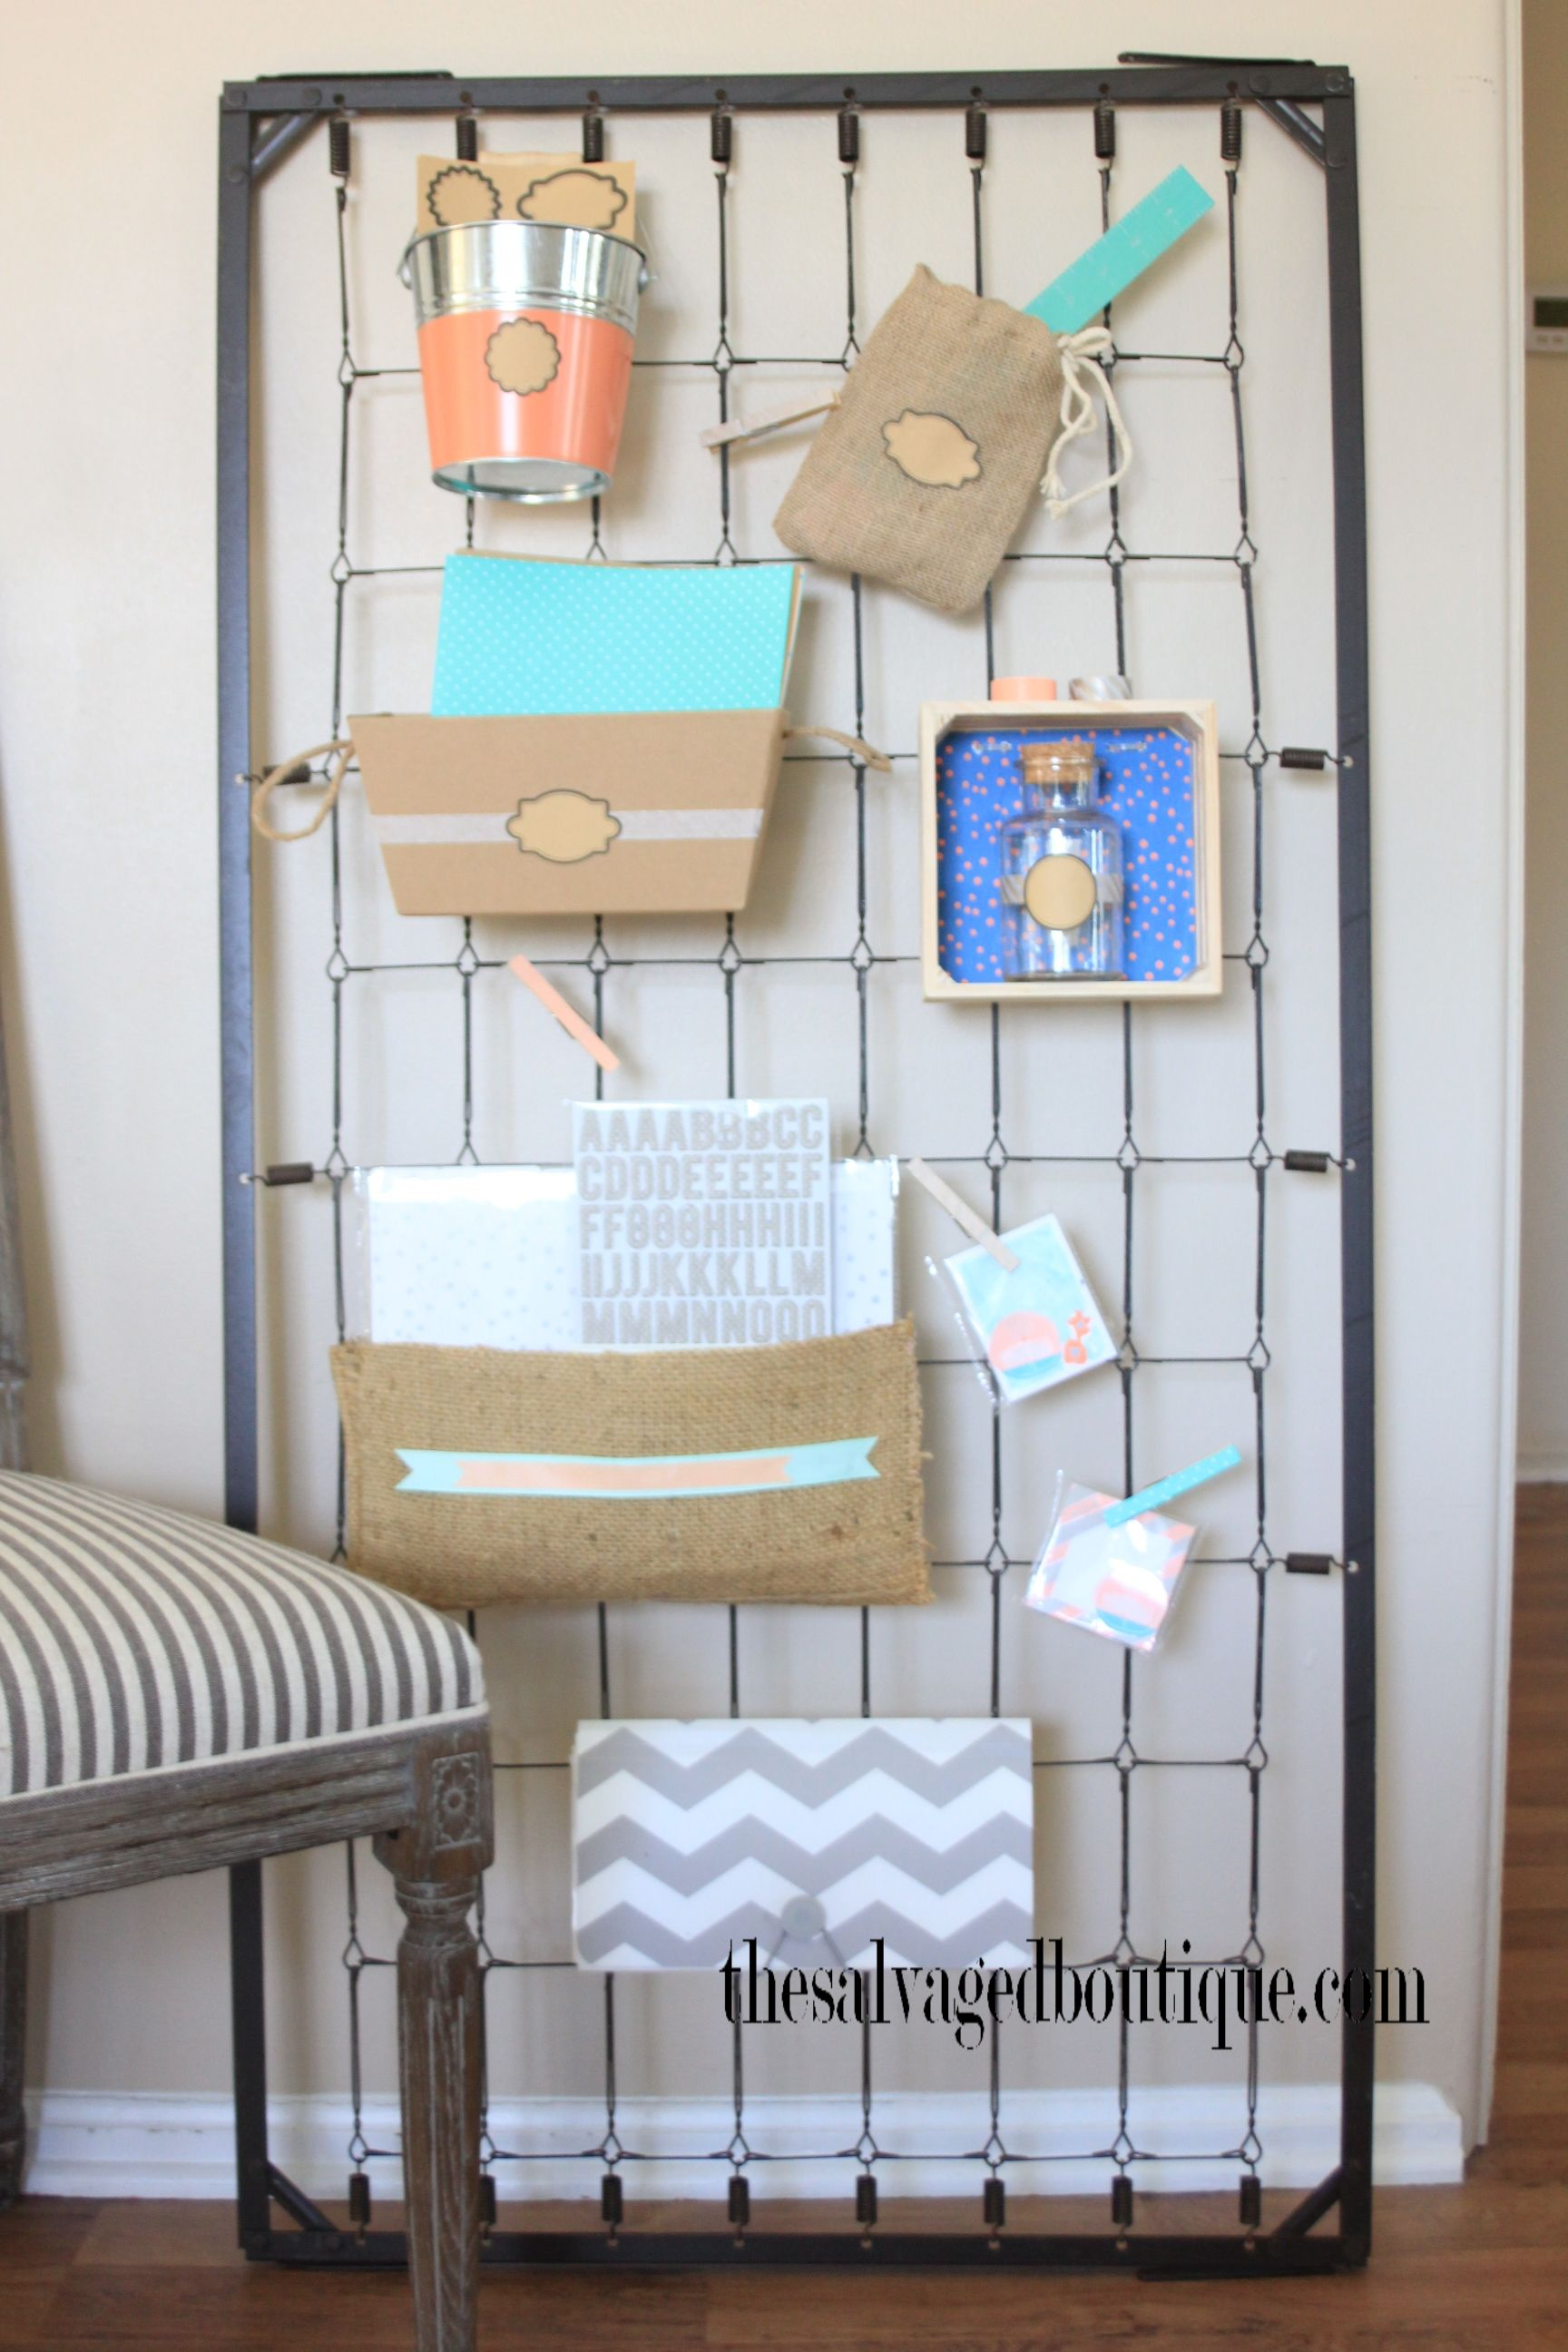 Crib spring frame for sale - Baby Crib Spring Wall Organizer The Salvaged Boutique Takes An Old Baby Crib Spring And